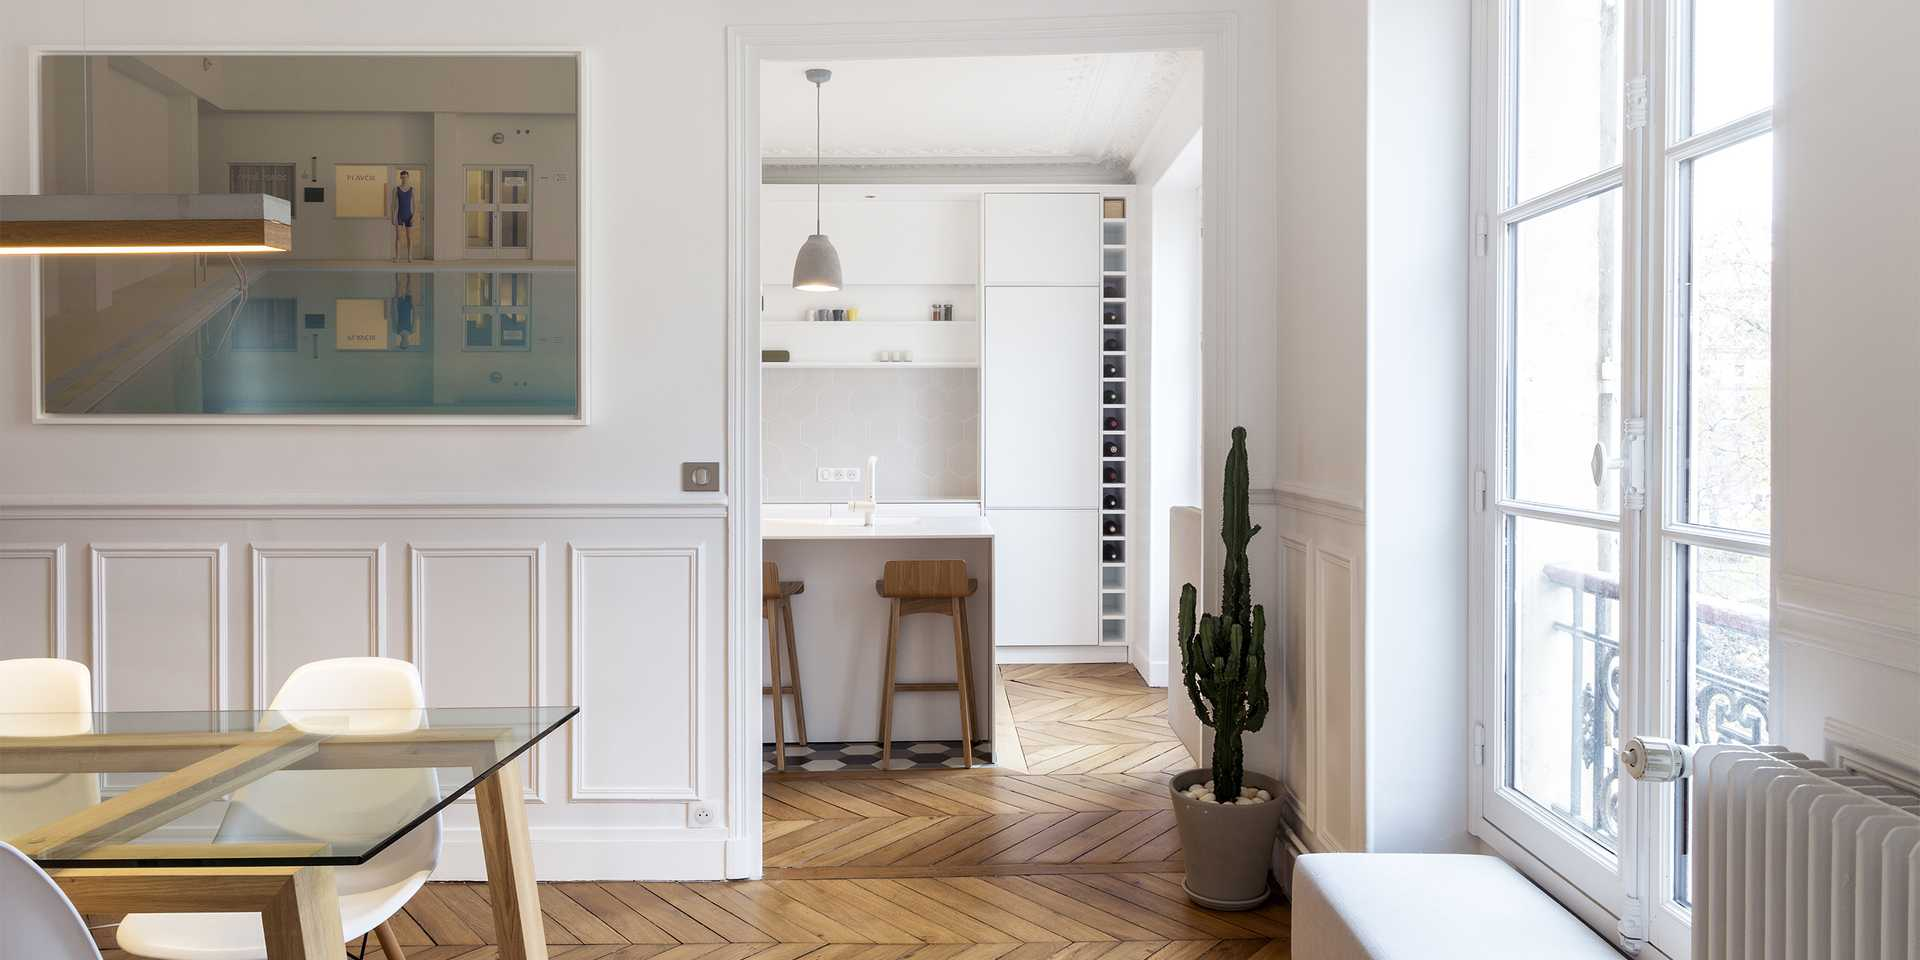 Haussmannian apartment redesigned by an architect in Lyon